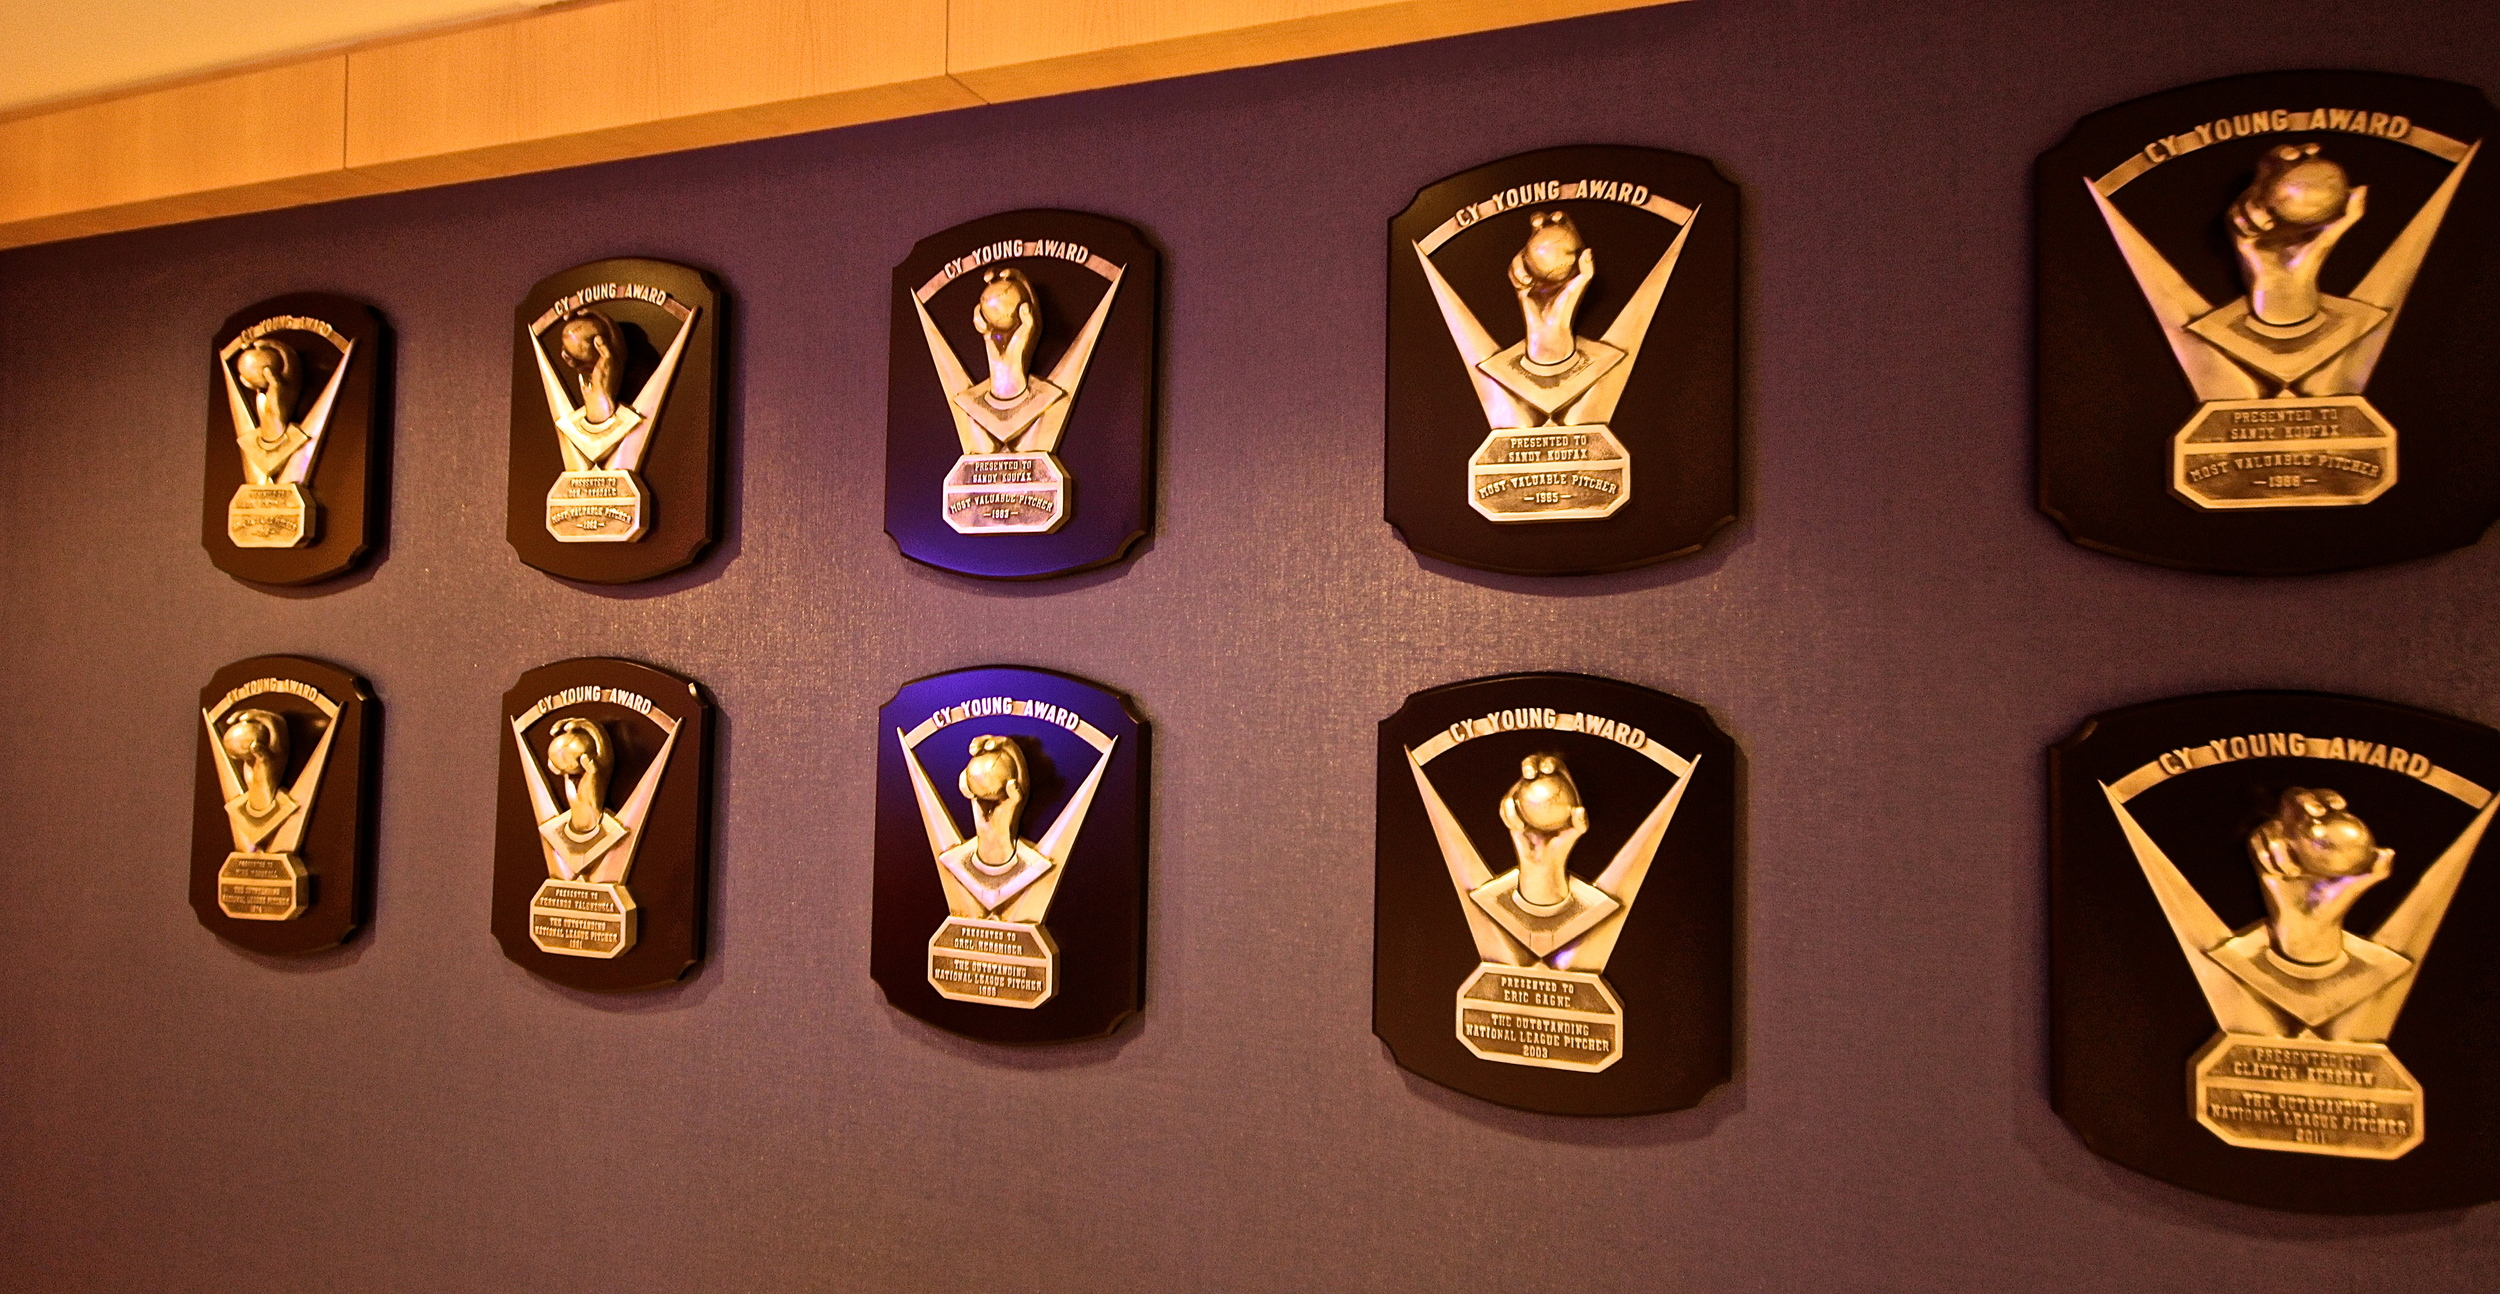 Wall of Cy Youngs